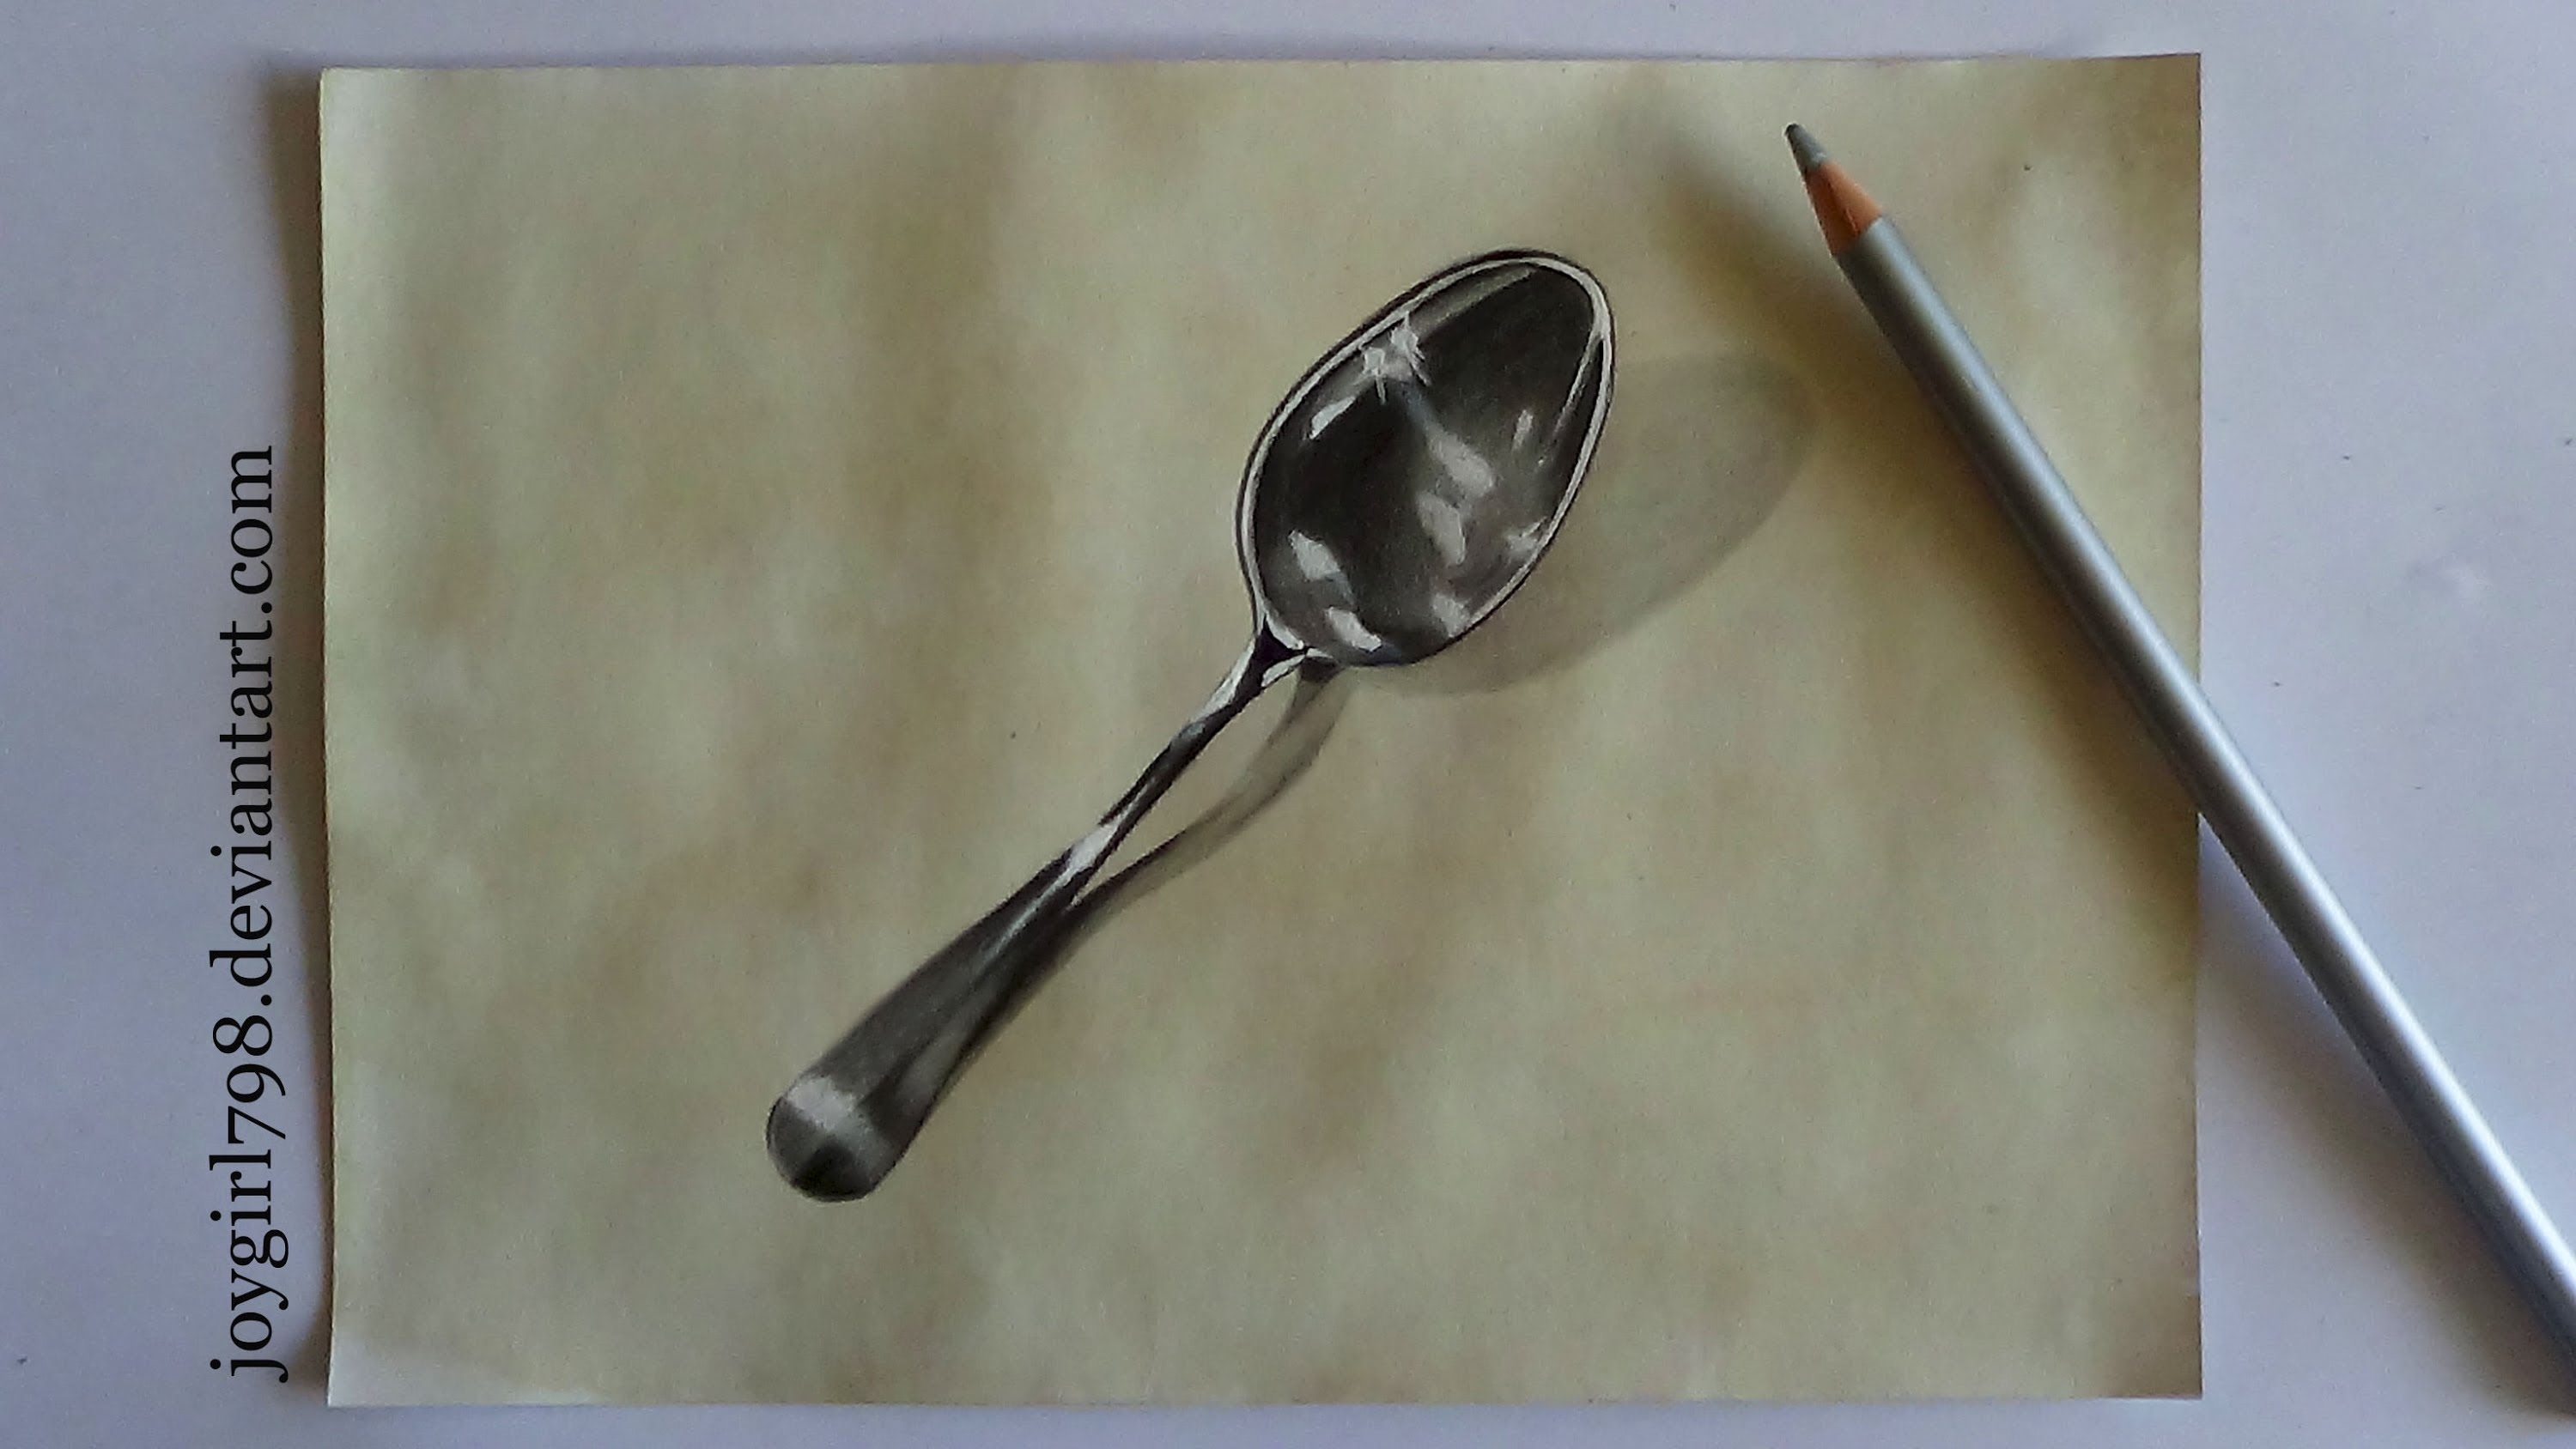 Drawn spoon pencil drawing Metal draw Pencils] spoon YouTube